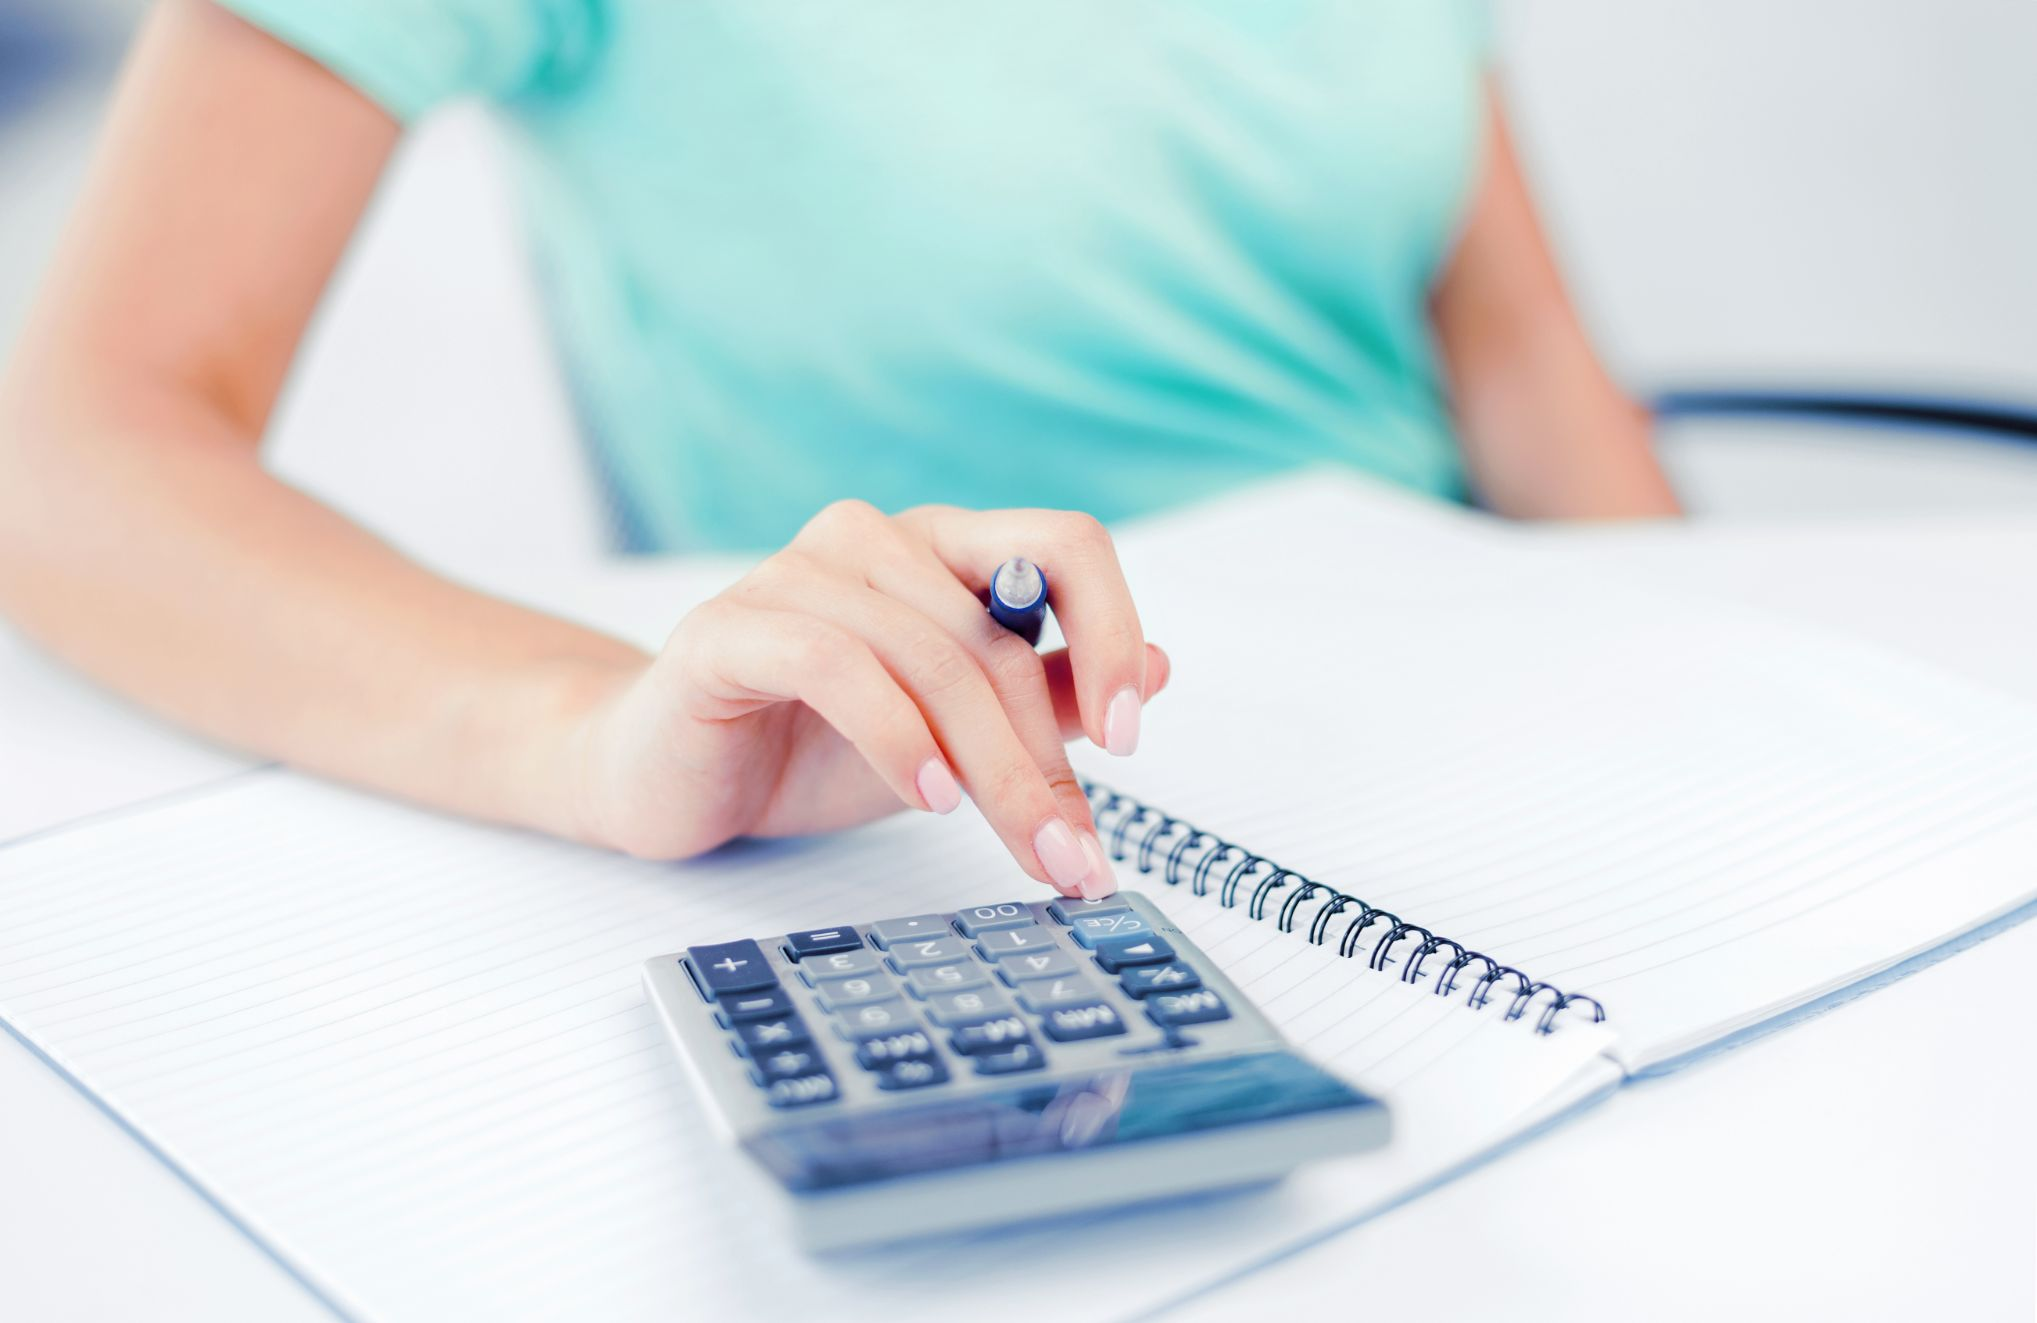 businesswoman-working-with-calculator-in-office-PK5RG5V